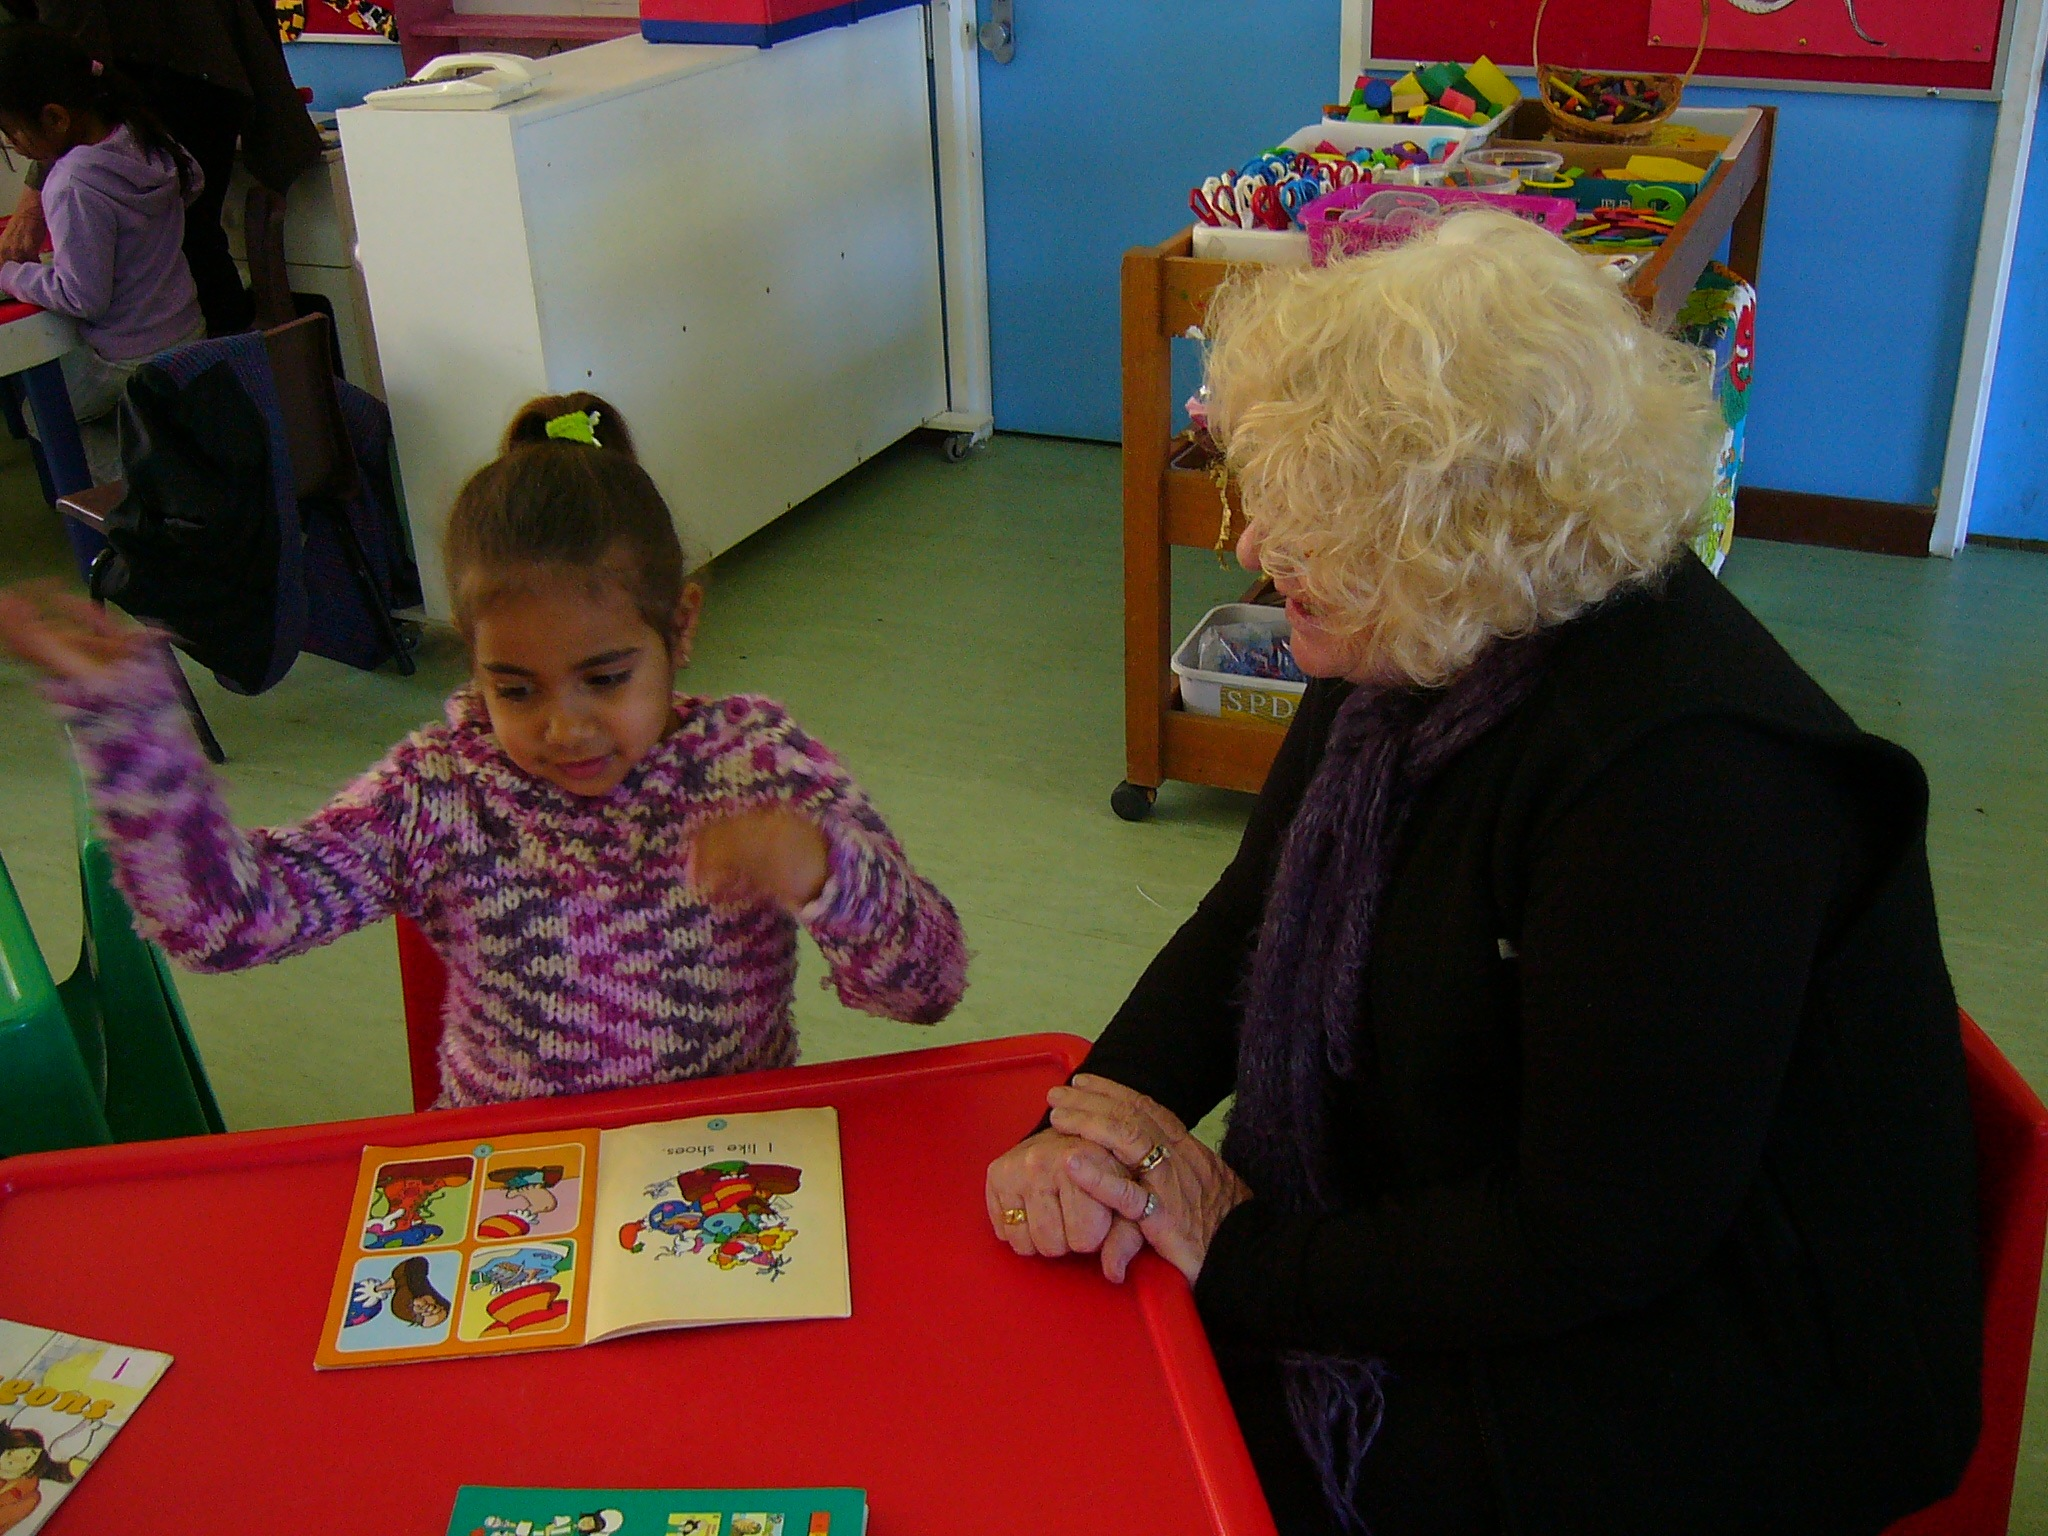 Jan Musk and a young friend experience the joy of reading